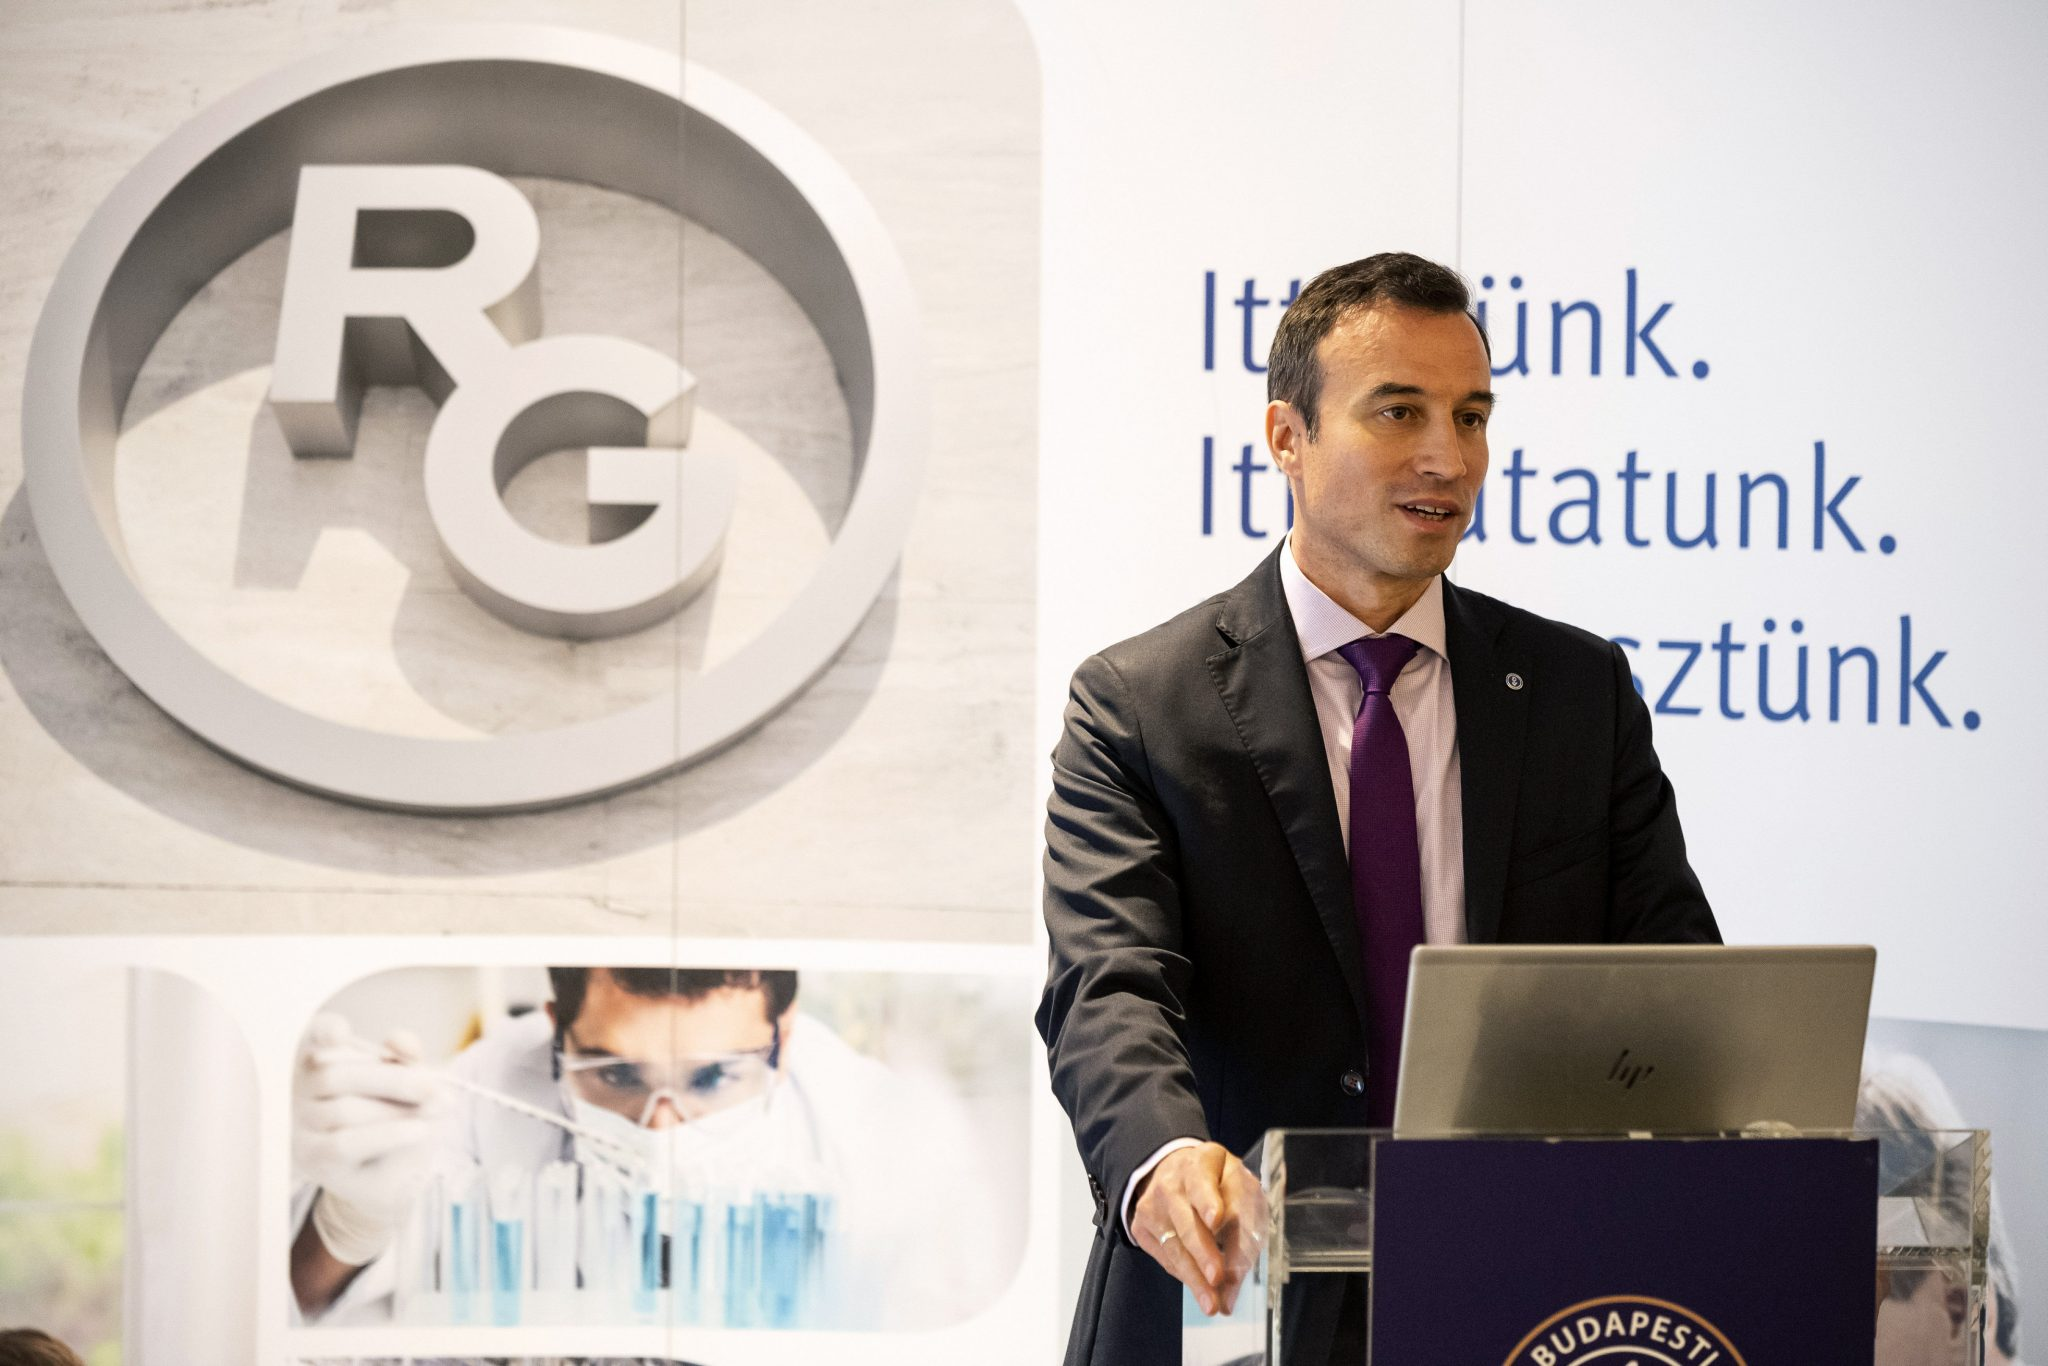 Richter CEO: Remdesivir Production Started in